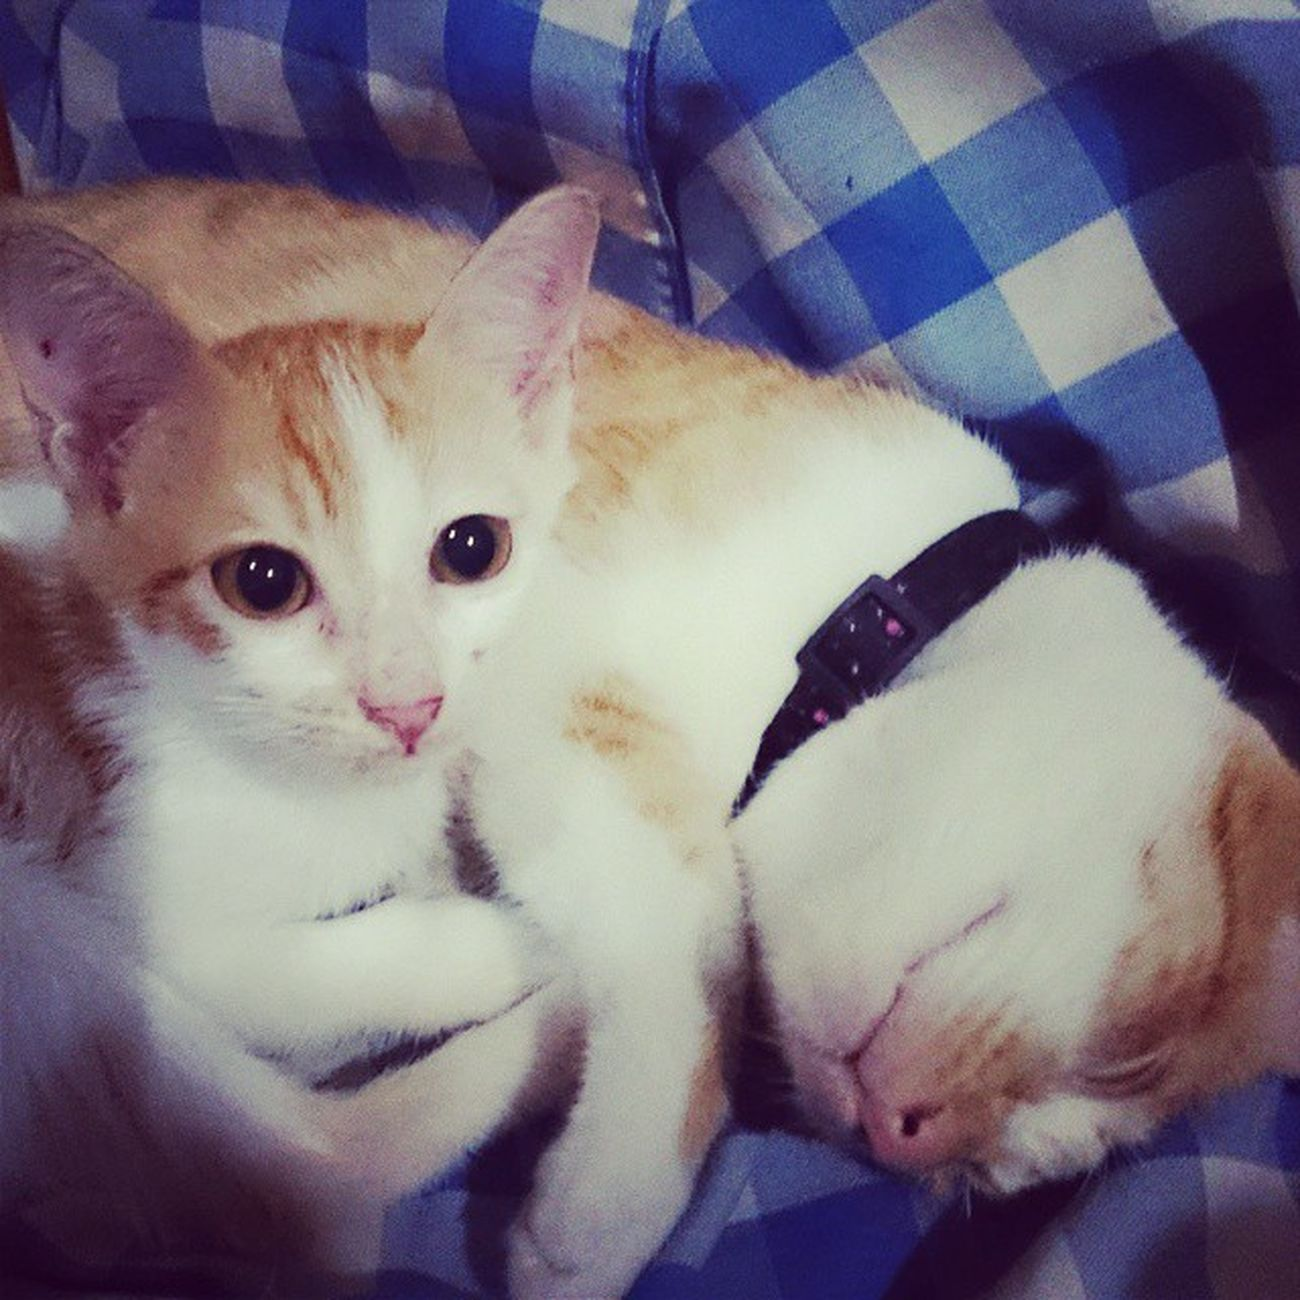 BROTHERHOOD Sweetestcat SolsticeAndZoe